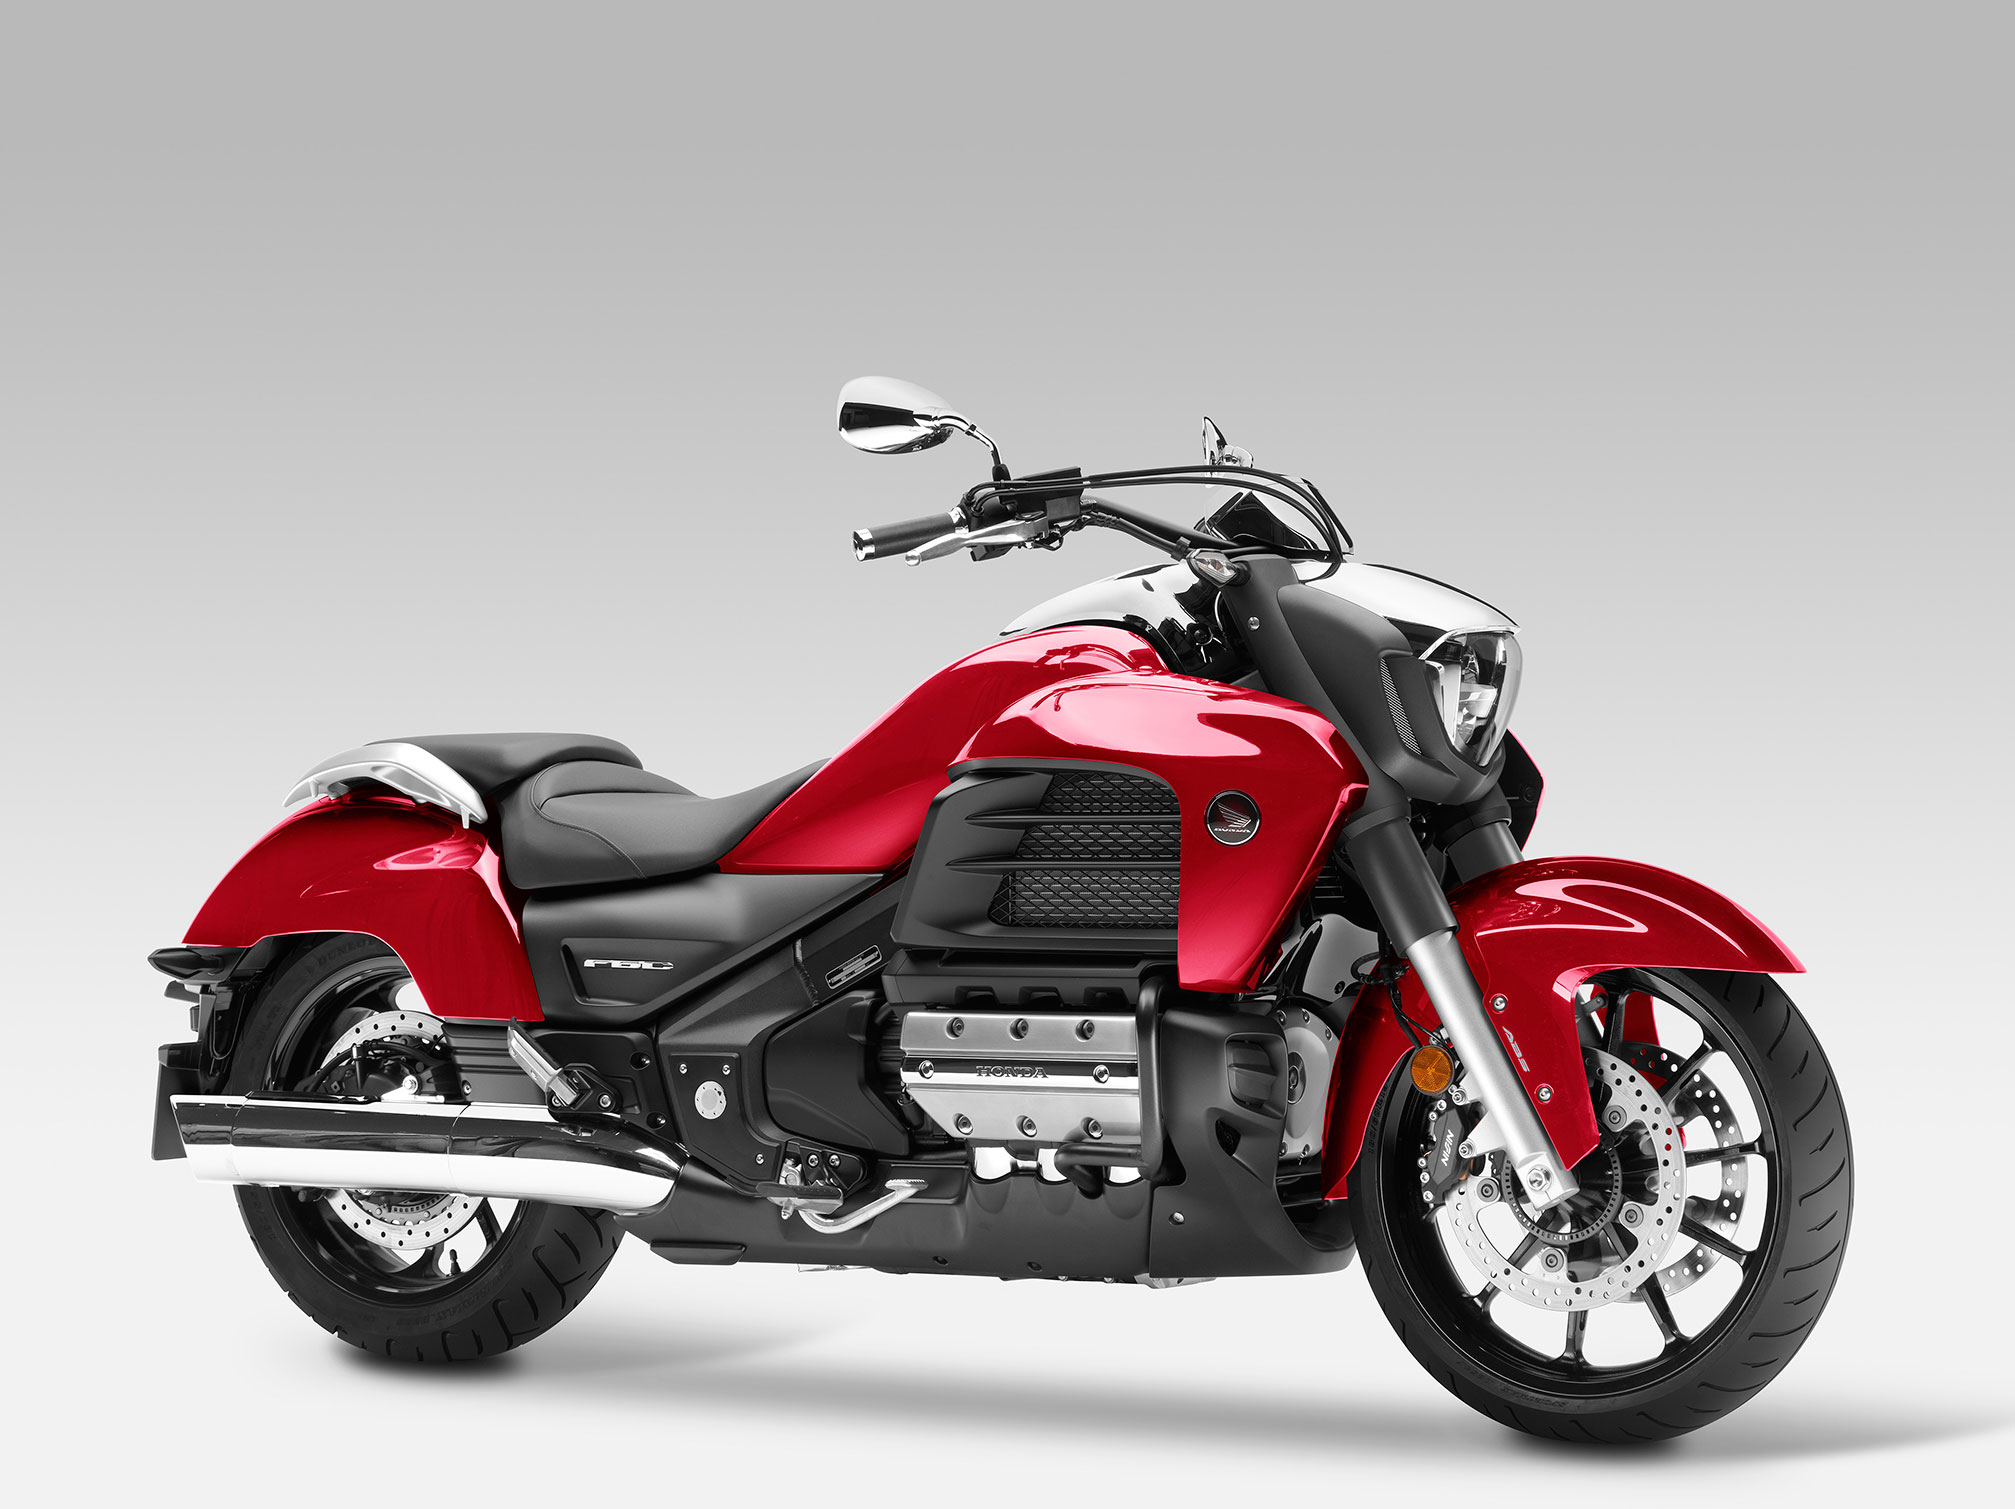 Honda Gold Wing F6C 2015 images #83205